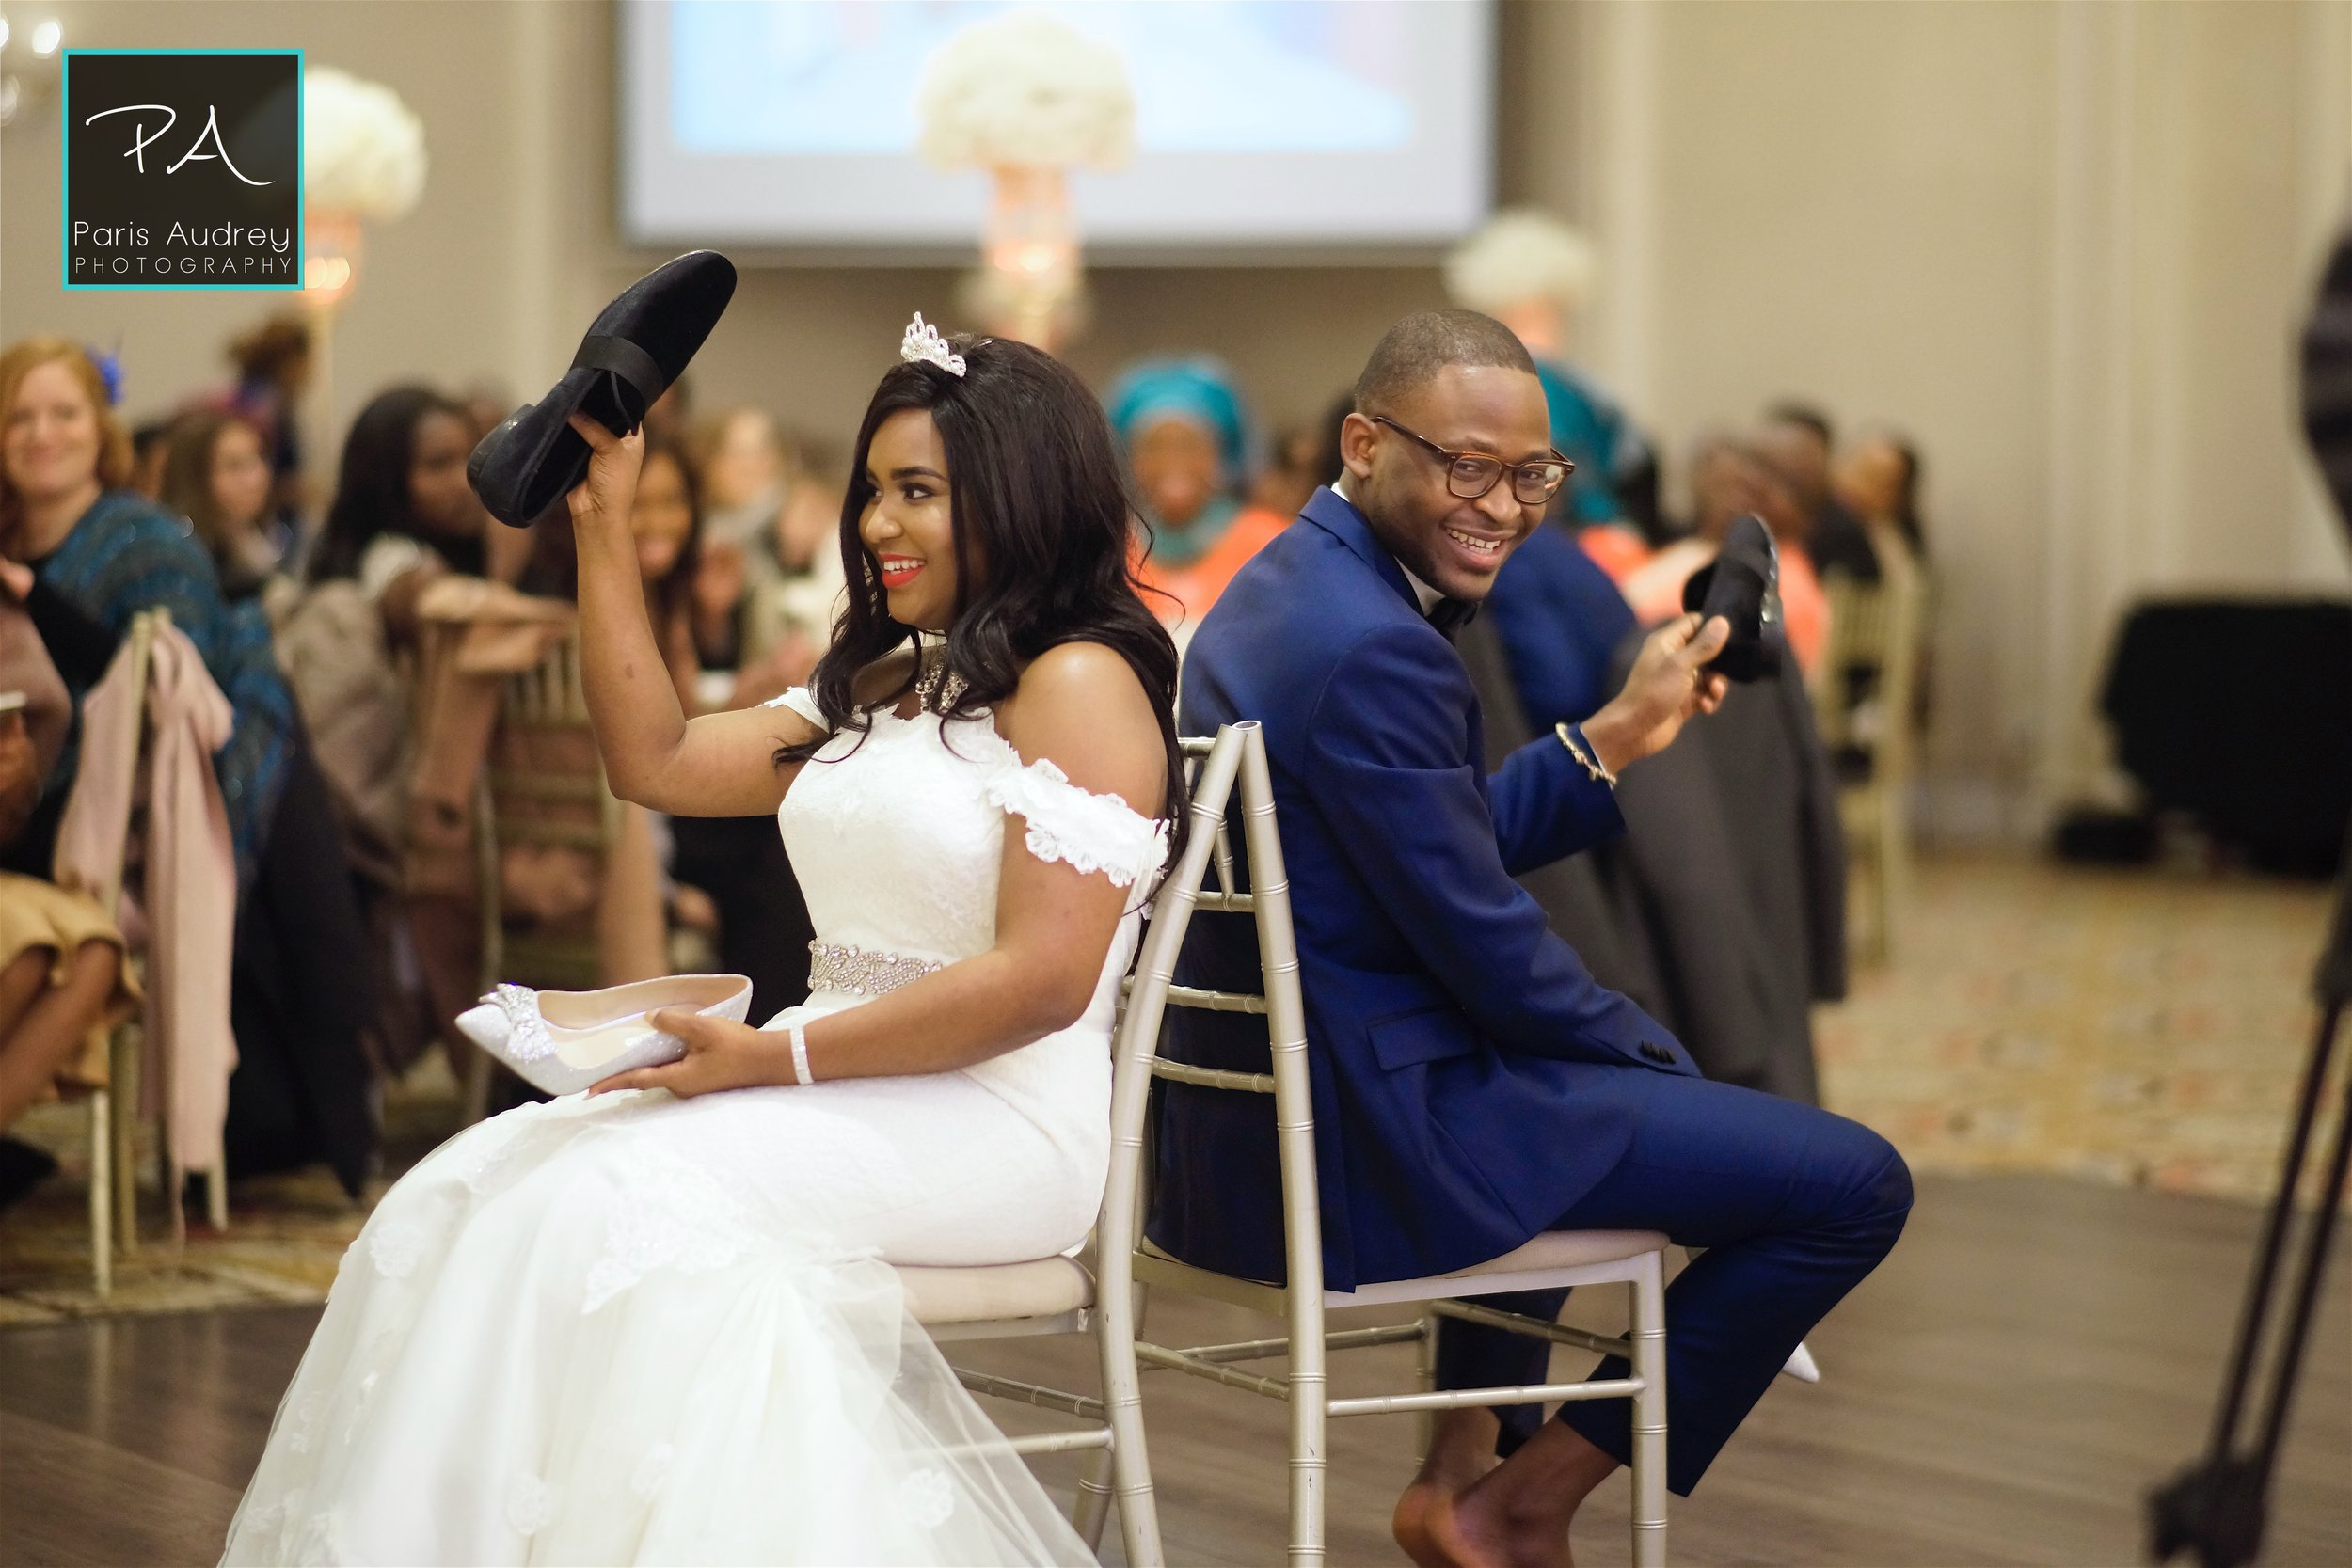 PA_Roseanne&Tosin_WeddingL (64).jpg